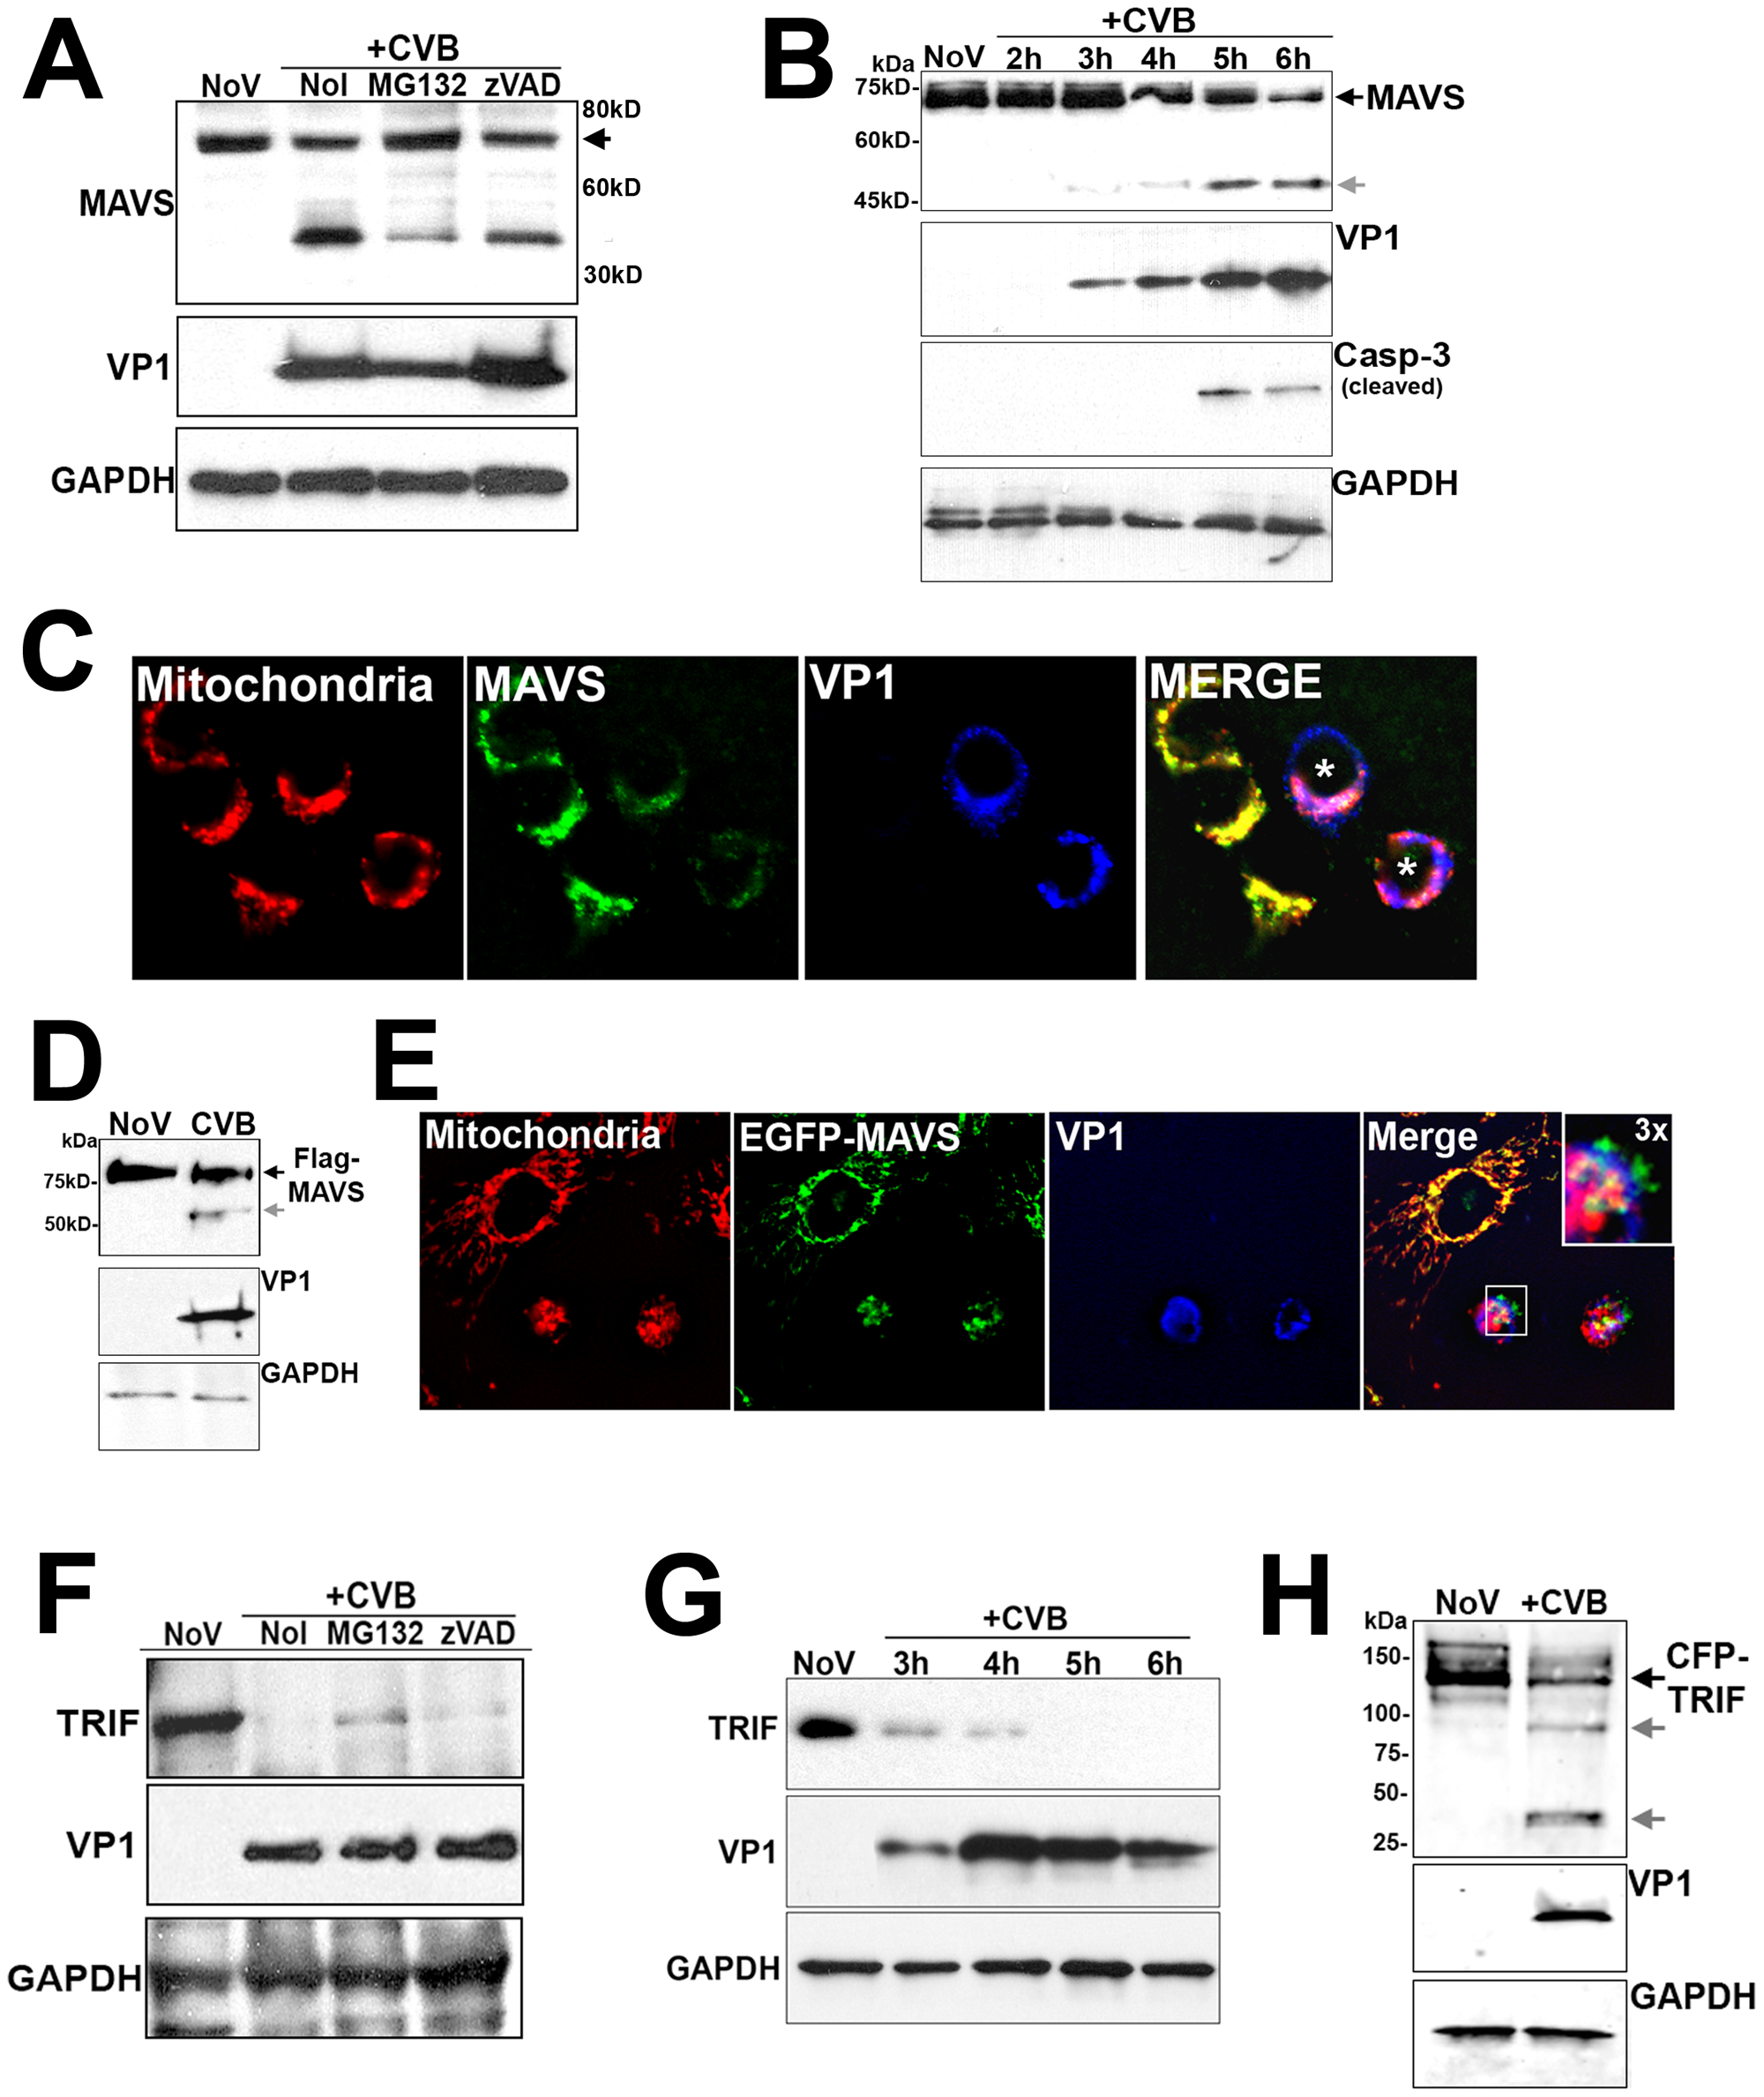 CVB3 infection induces MAVS and TRIF cleavage.